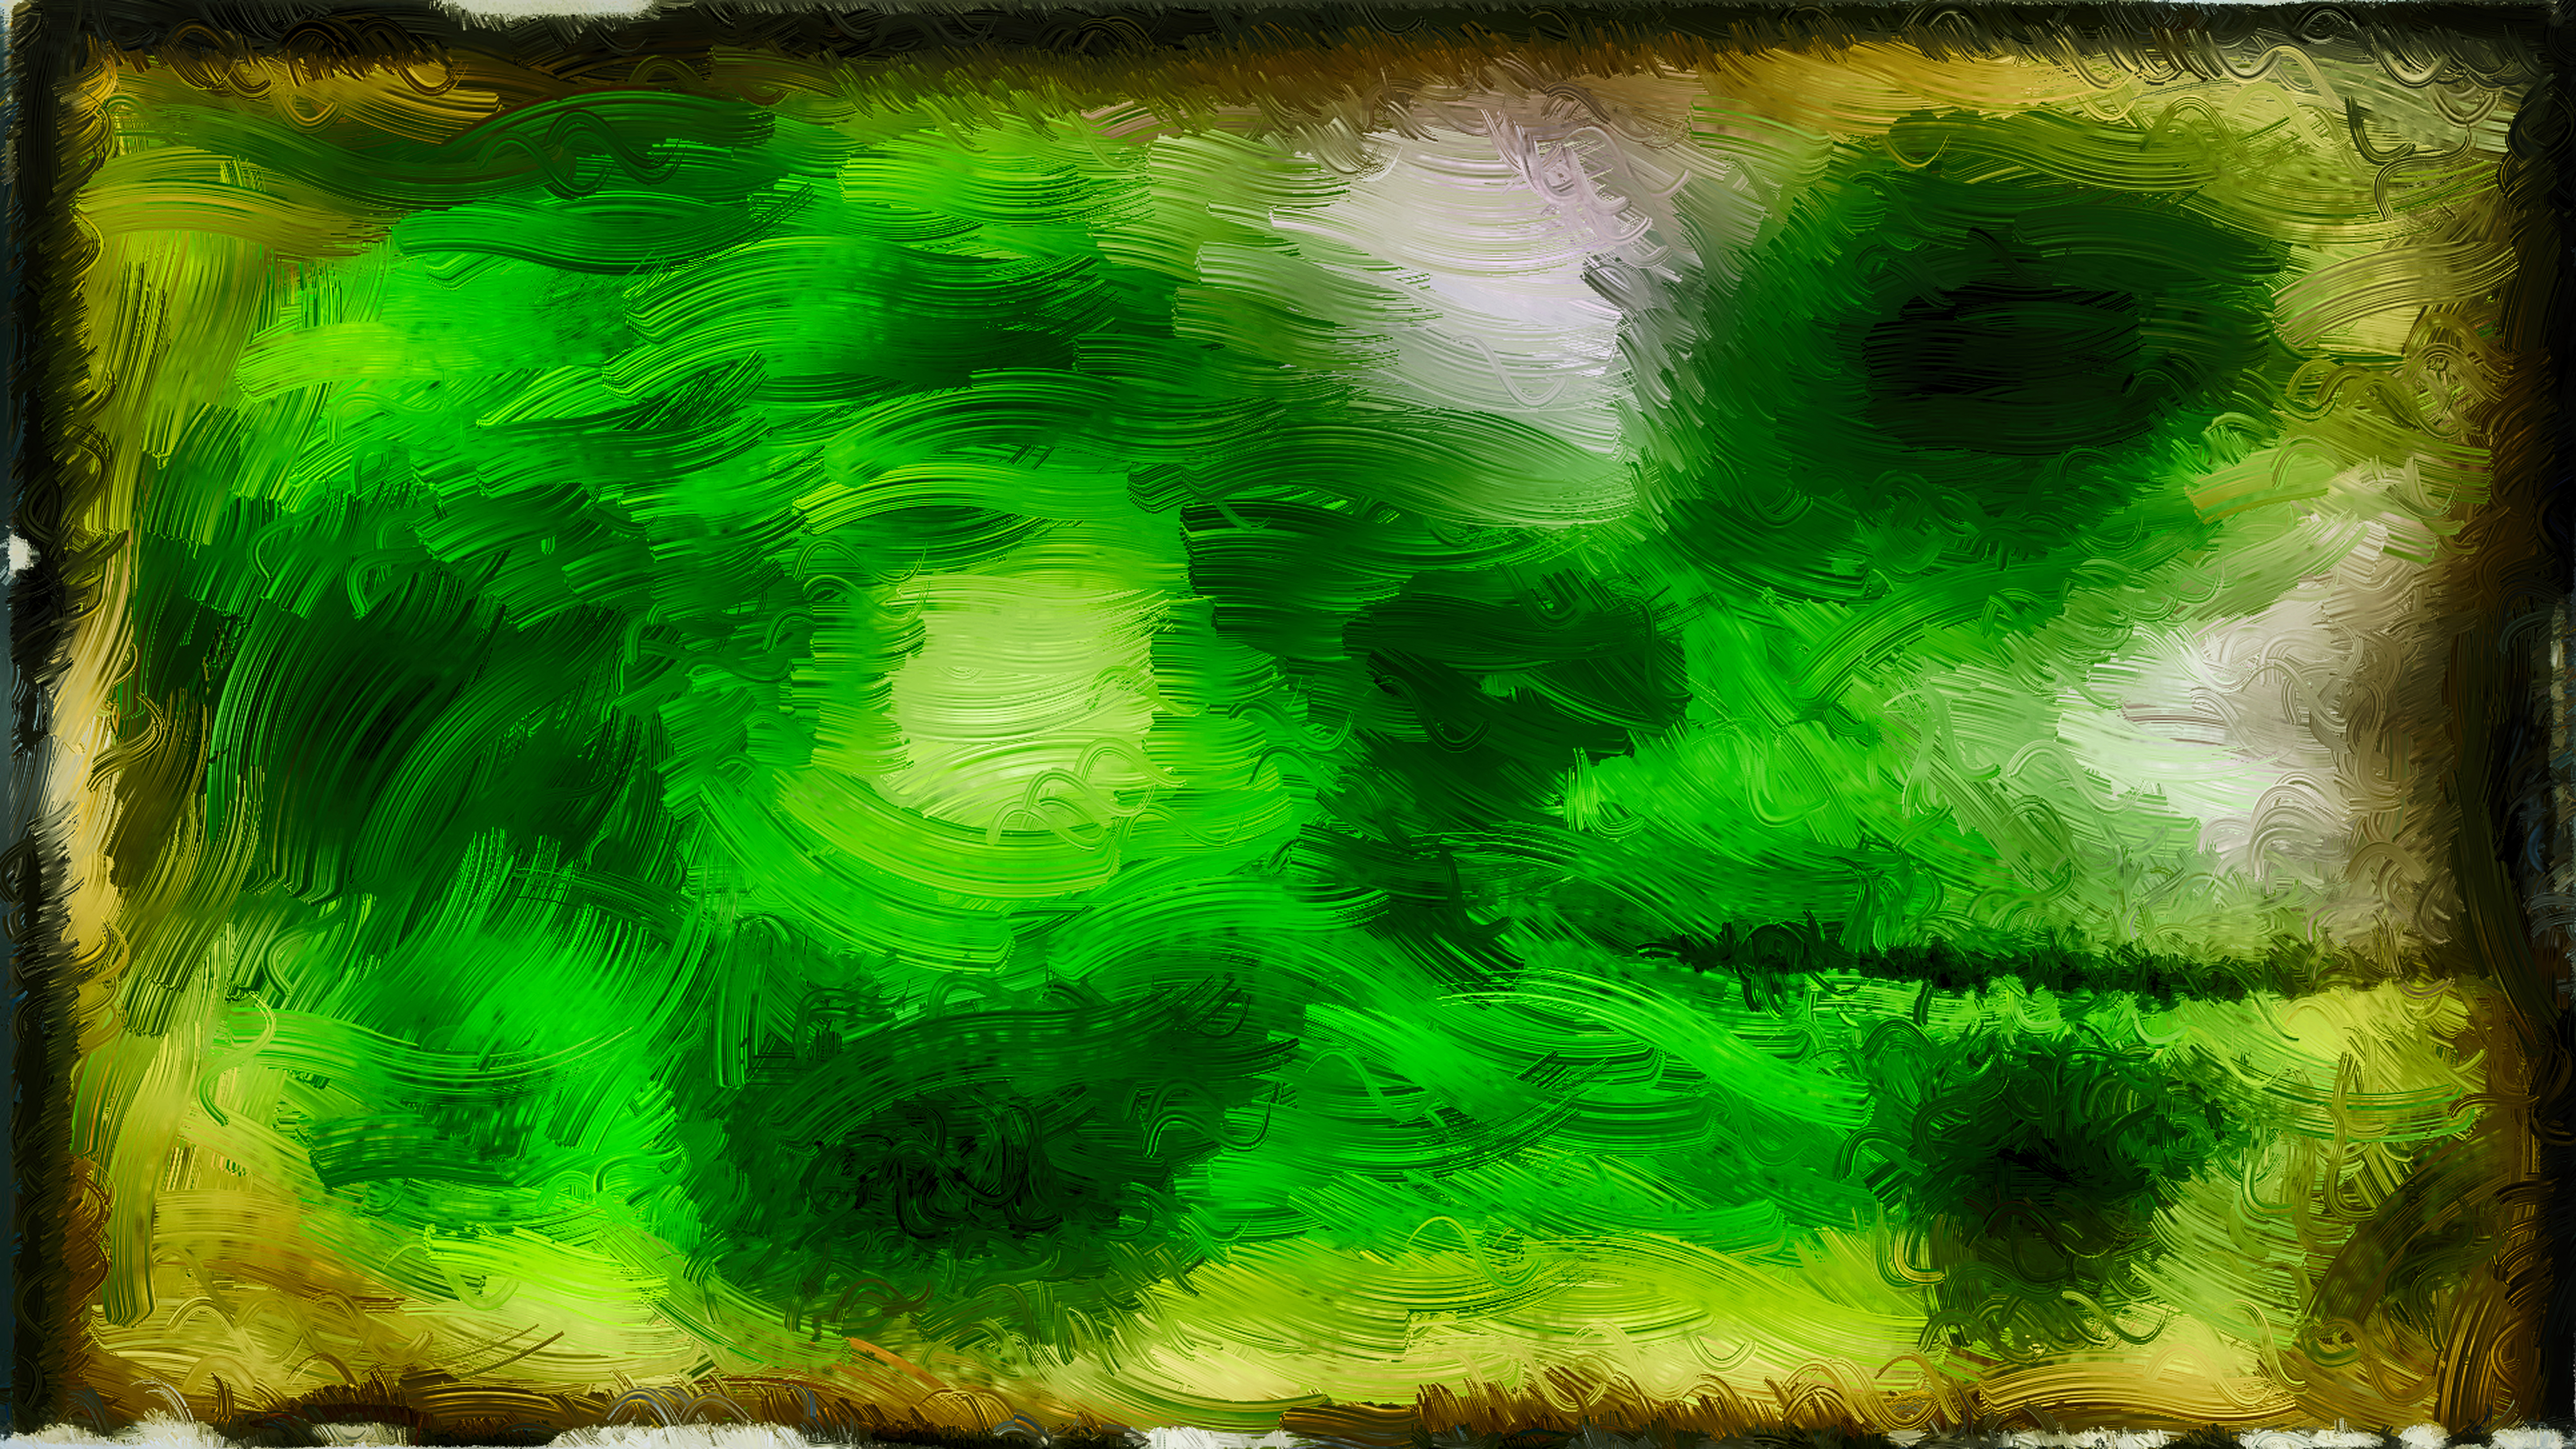 Abstract Dark Green Glass Effect Painting Background Image